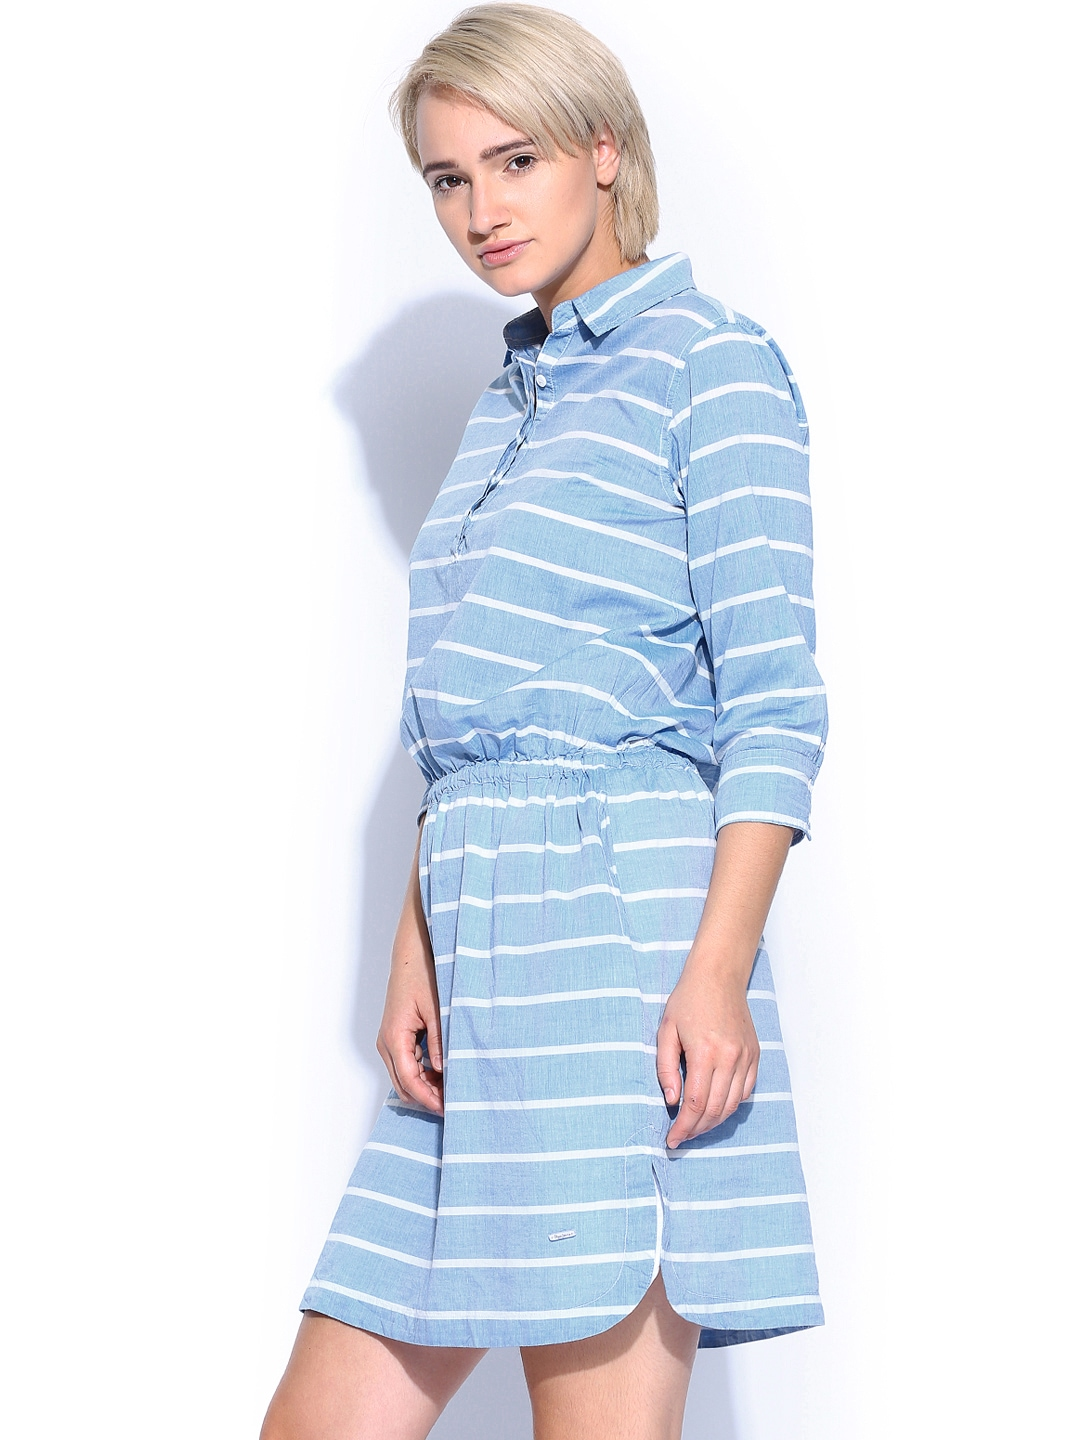 Myntra pepe jeans light blue white striped shirt dress for Buy white dress shirt